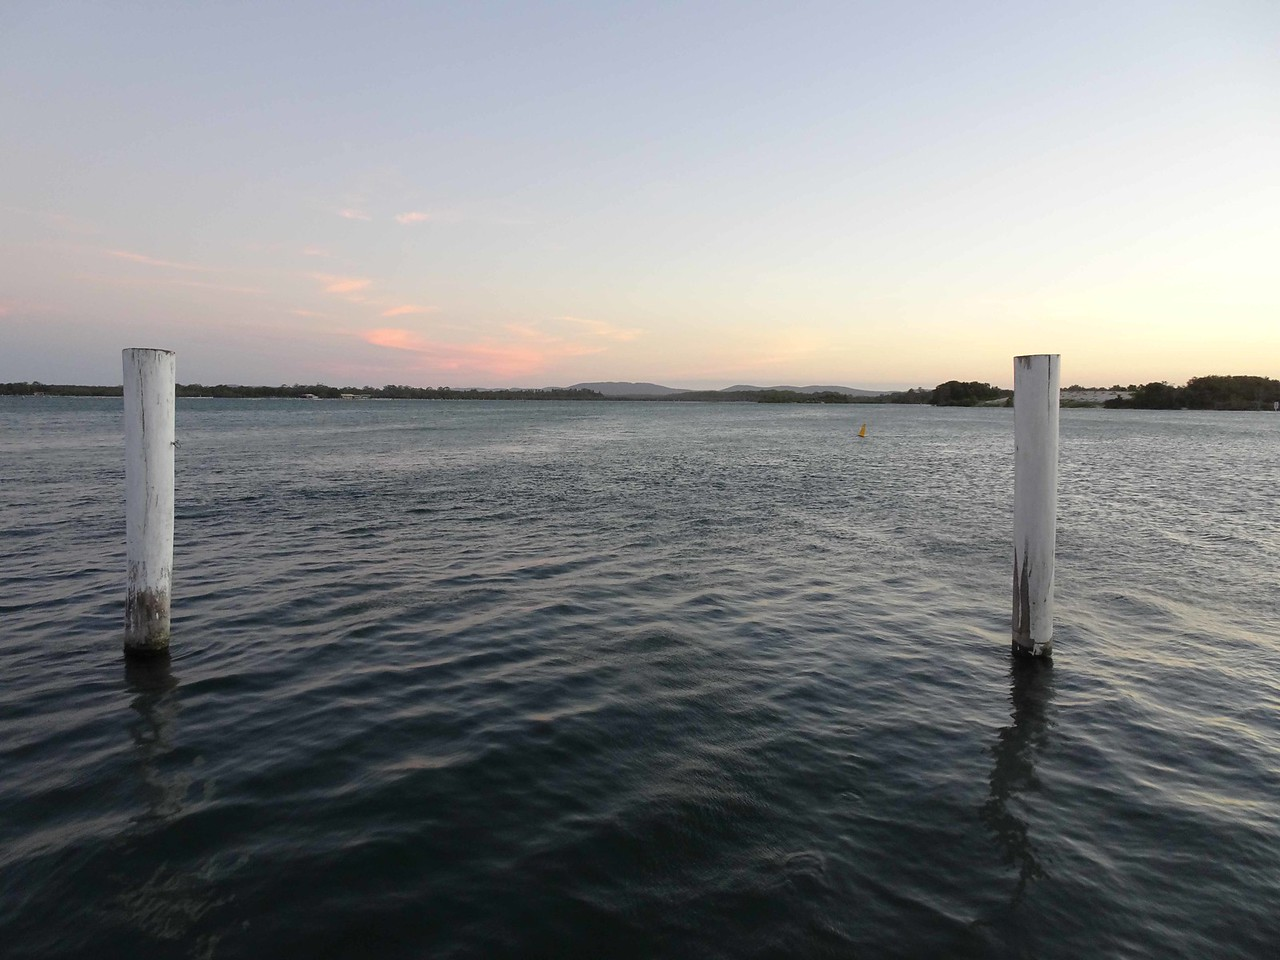 711 The water at Hamilton's Restaurant in Tuncurry